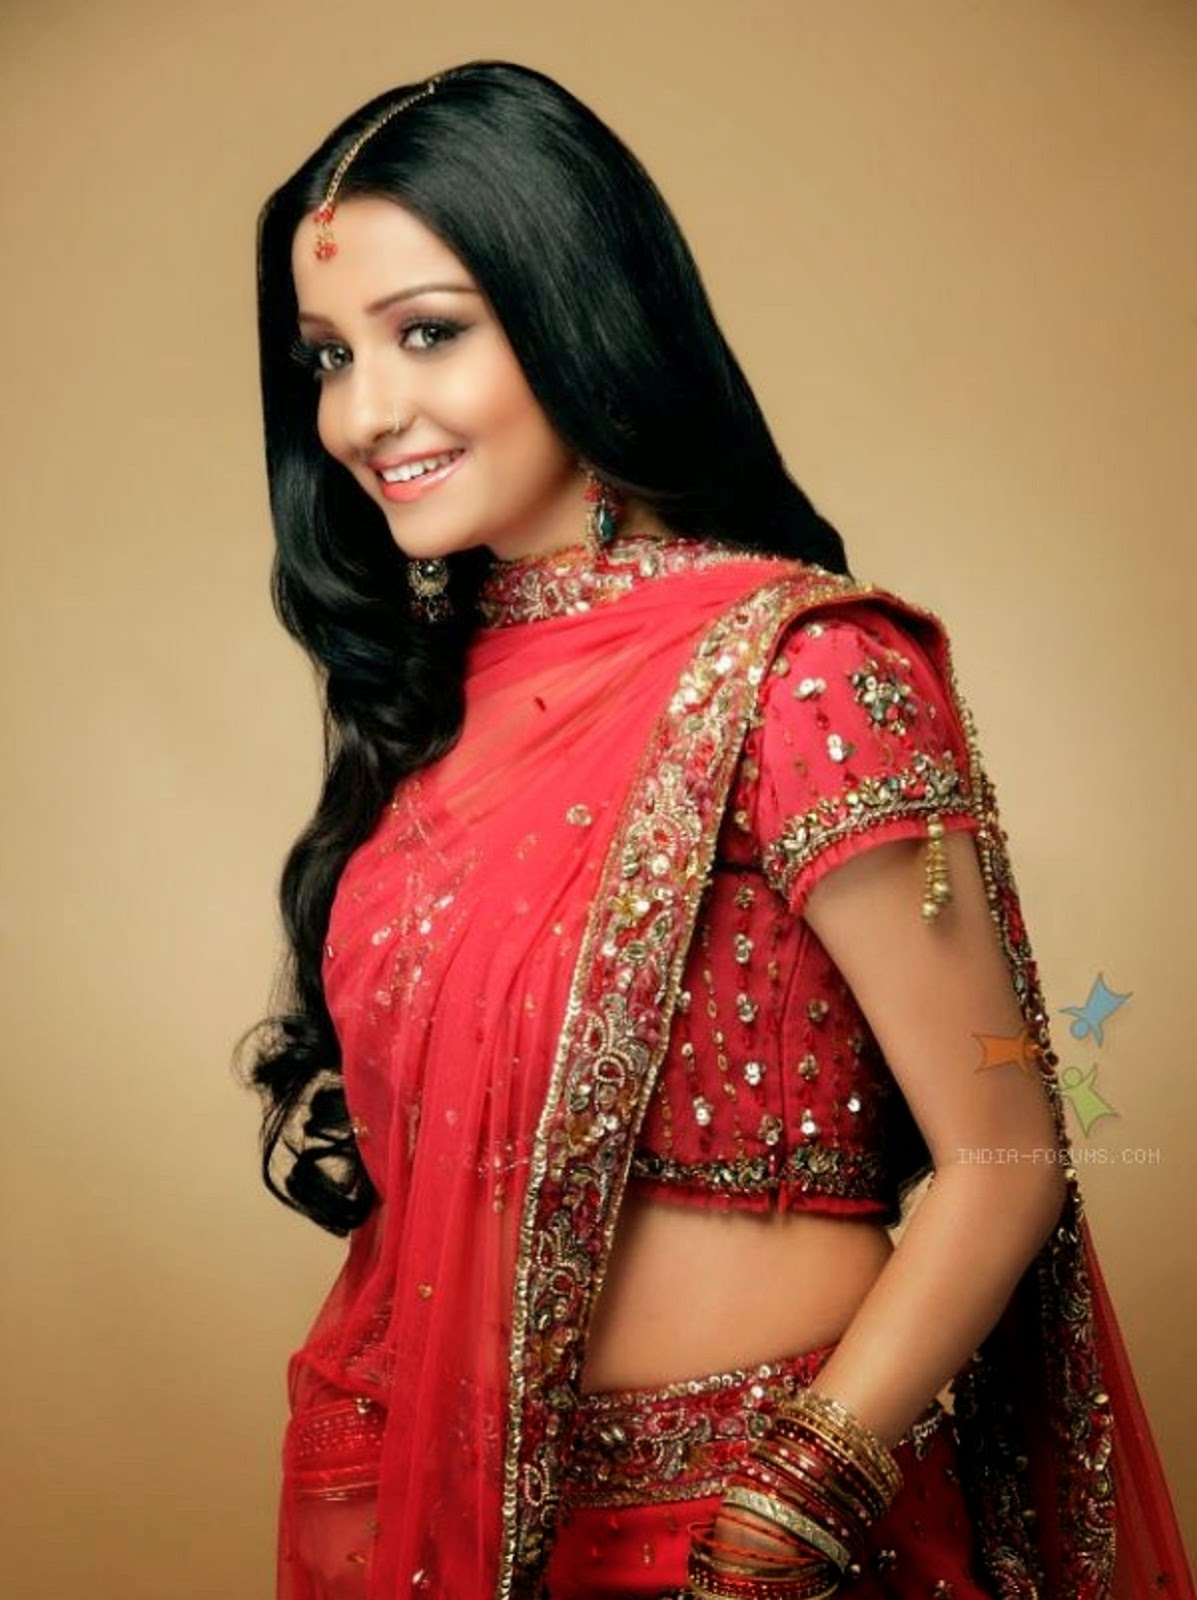 Discussion on this topic: Loni Love, chhavi-pandey-2011/